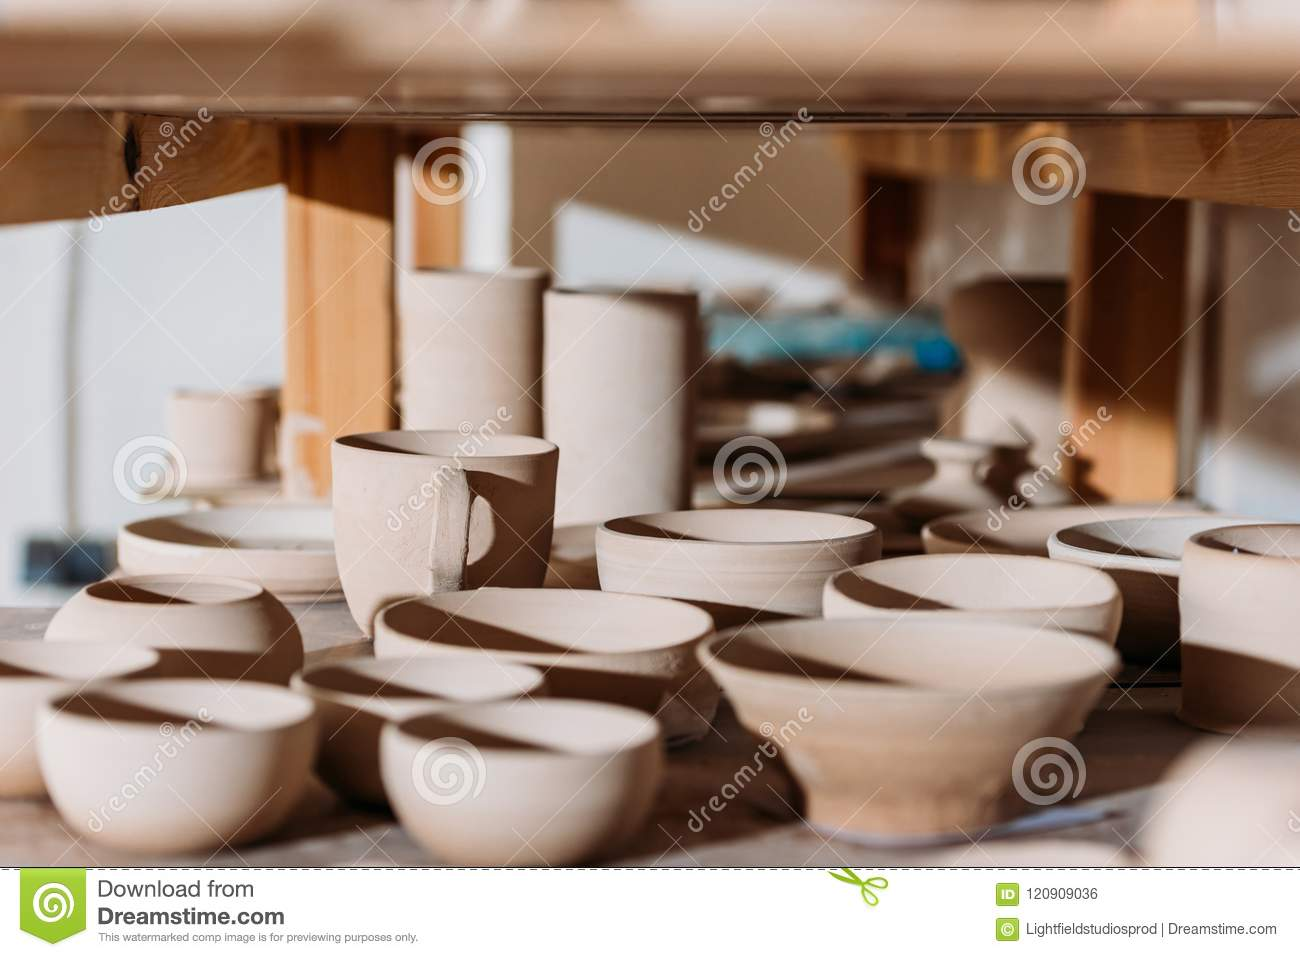 Ceramic Cups And Bowls On Wooden Shelves Stock Photo - Image